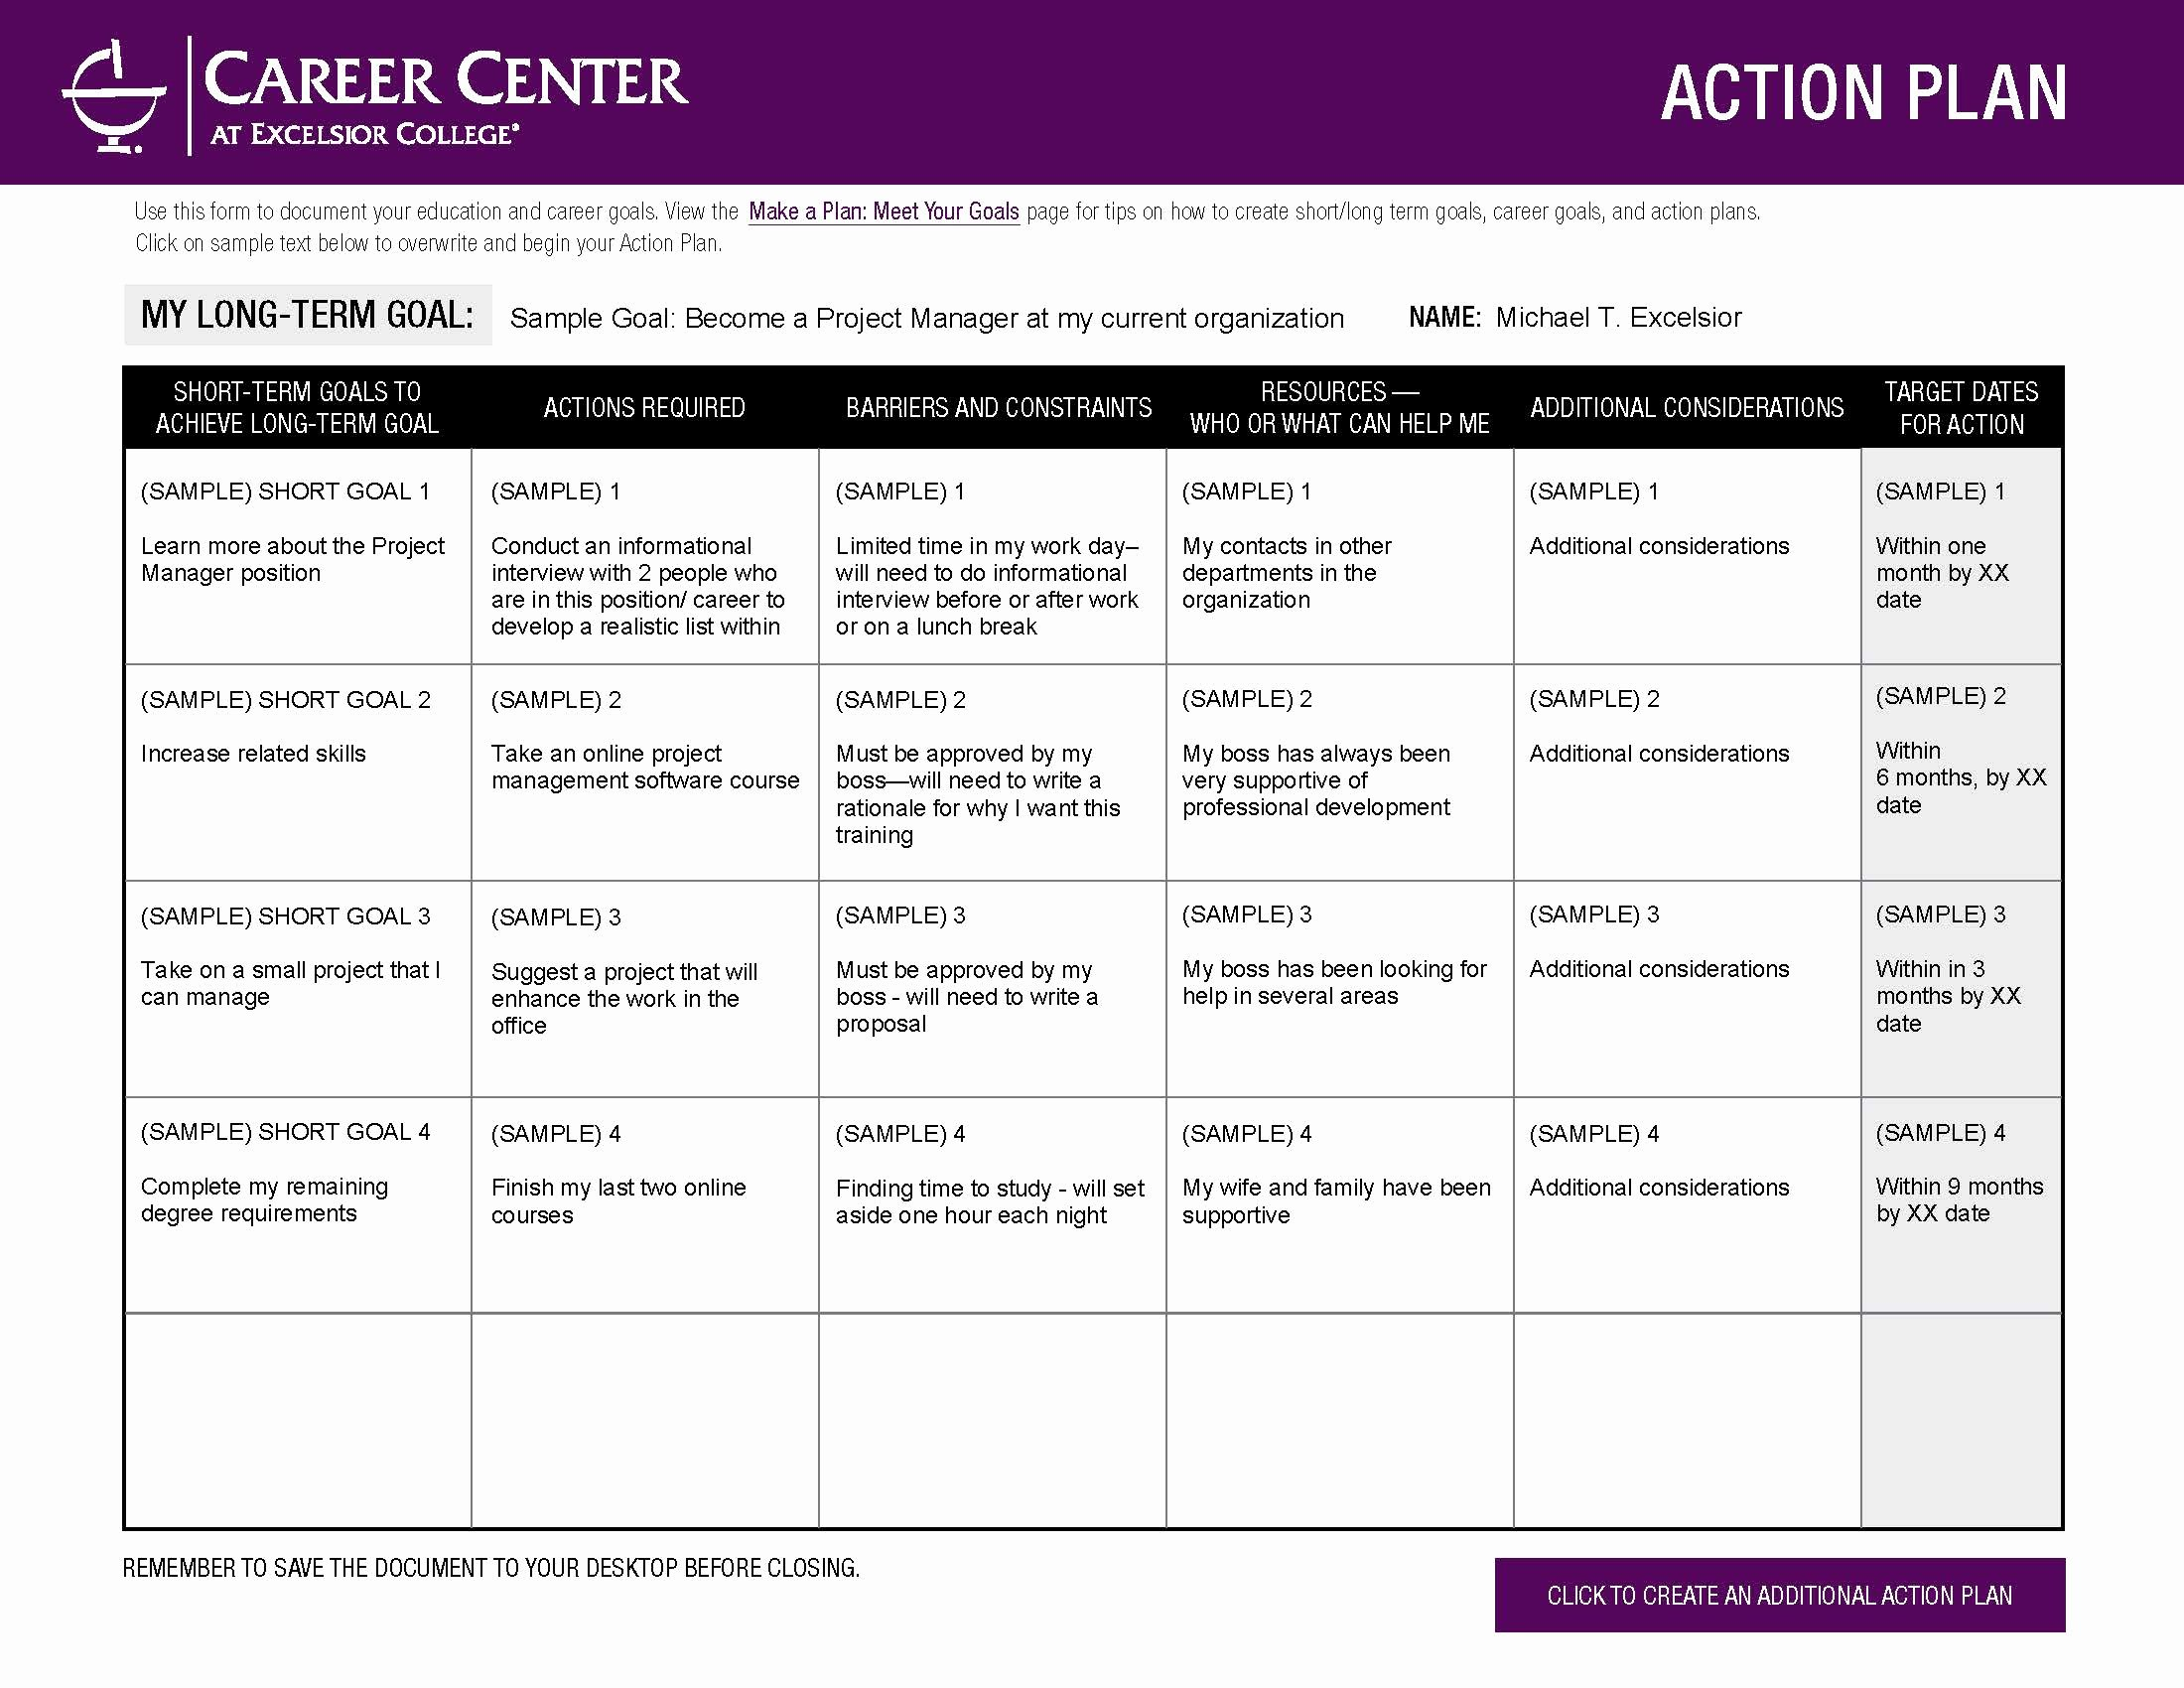 Action Plan Template for Students Beautiful Excelsior College Make A Plan Meet Your Goals Career Center